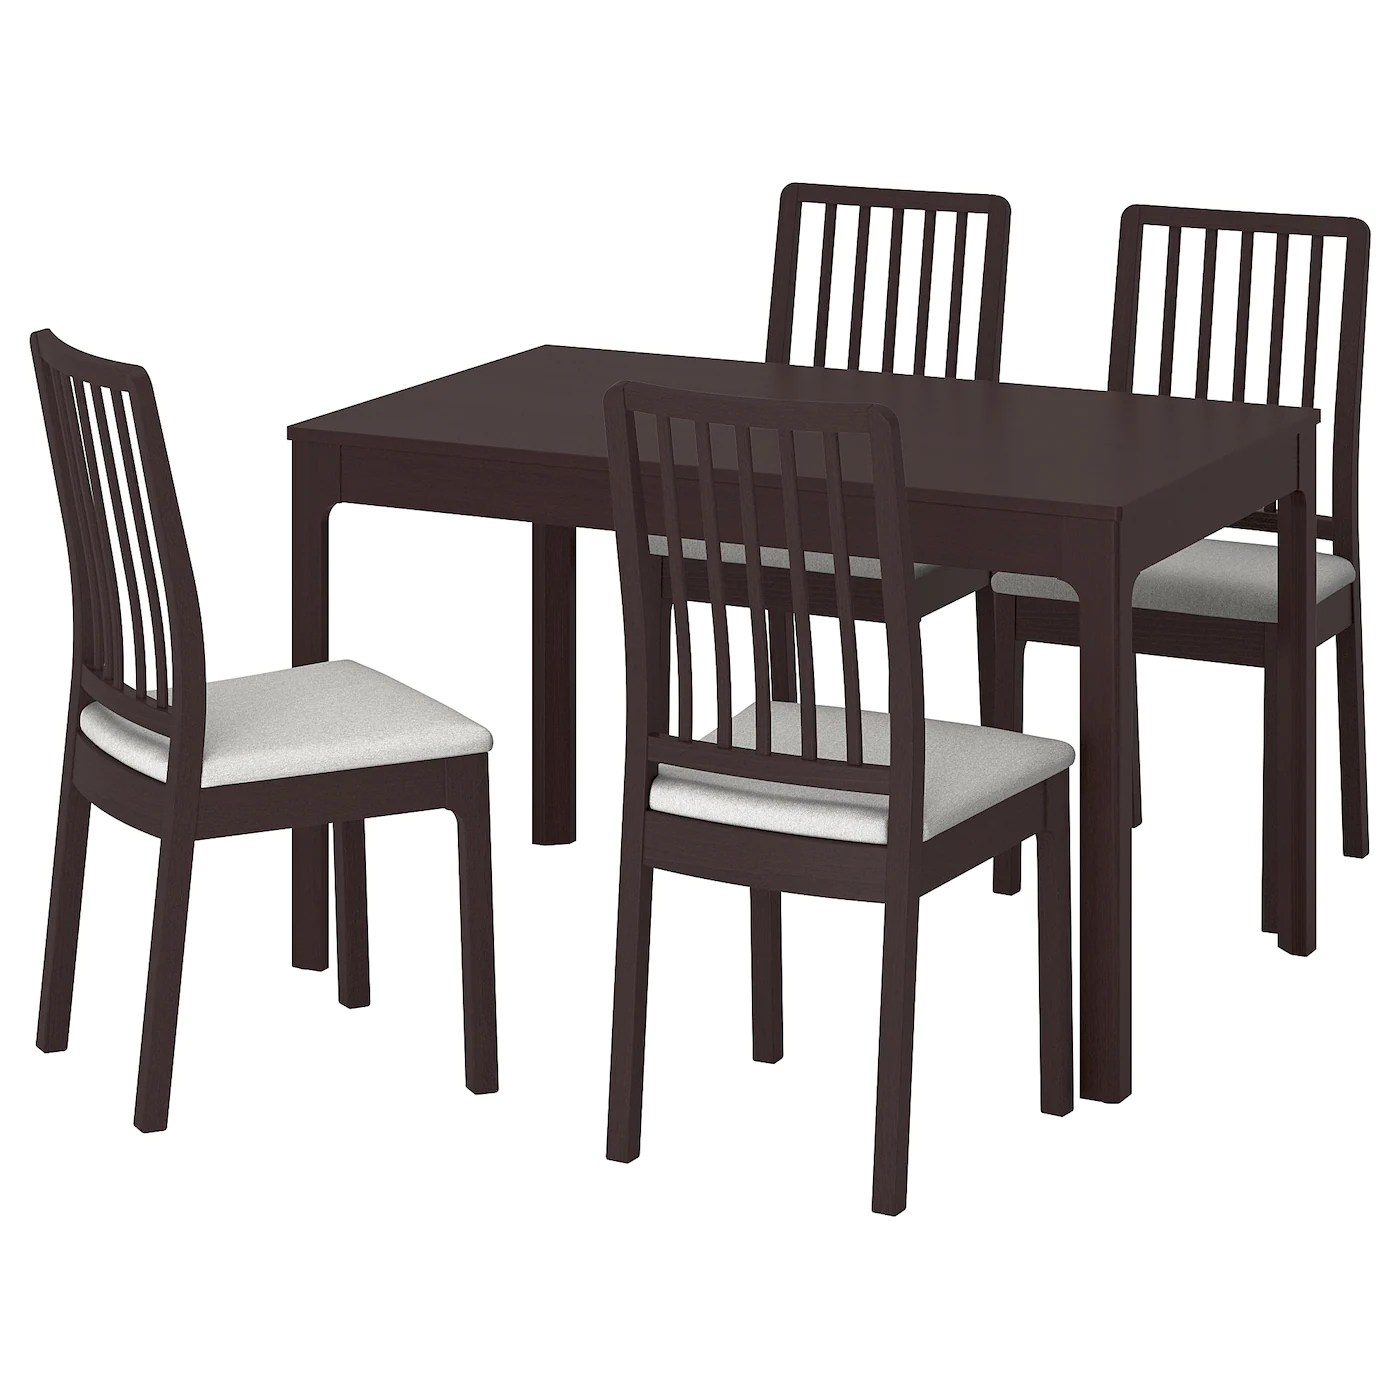 Gray Dining Room Chairs Dining Table Sets And Dining Room Sets Ikea